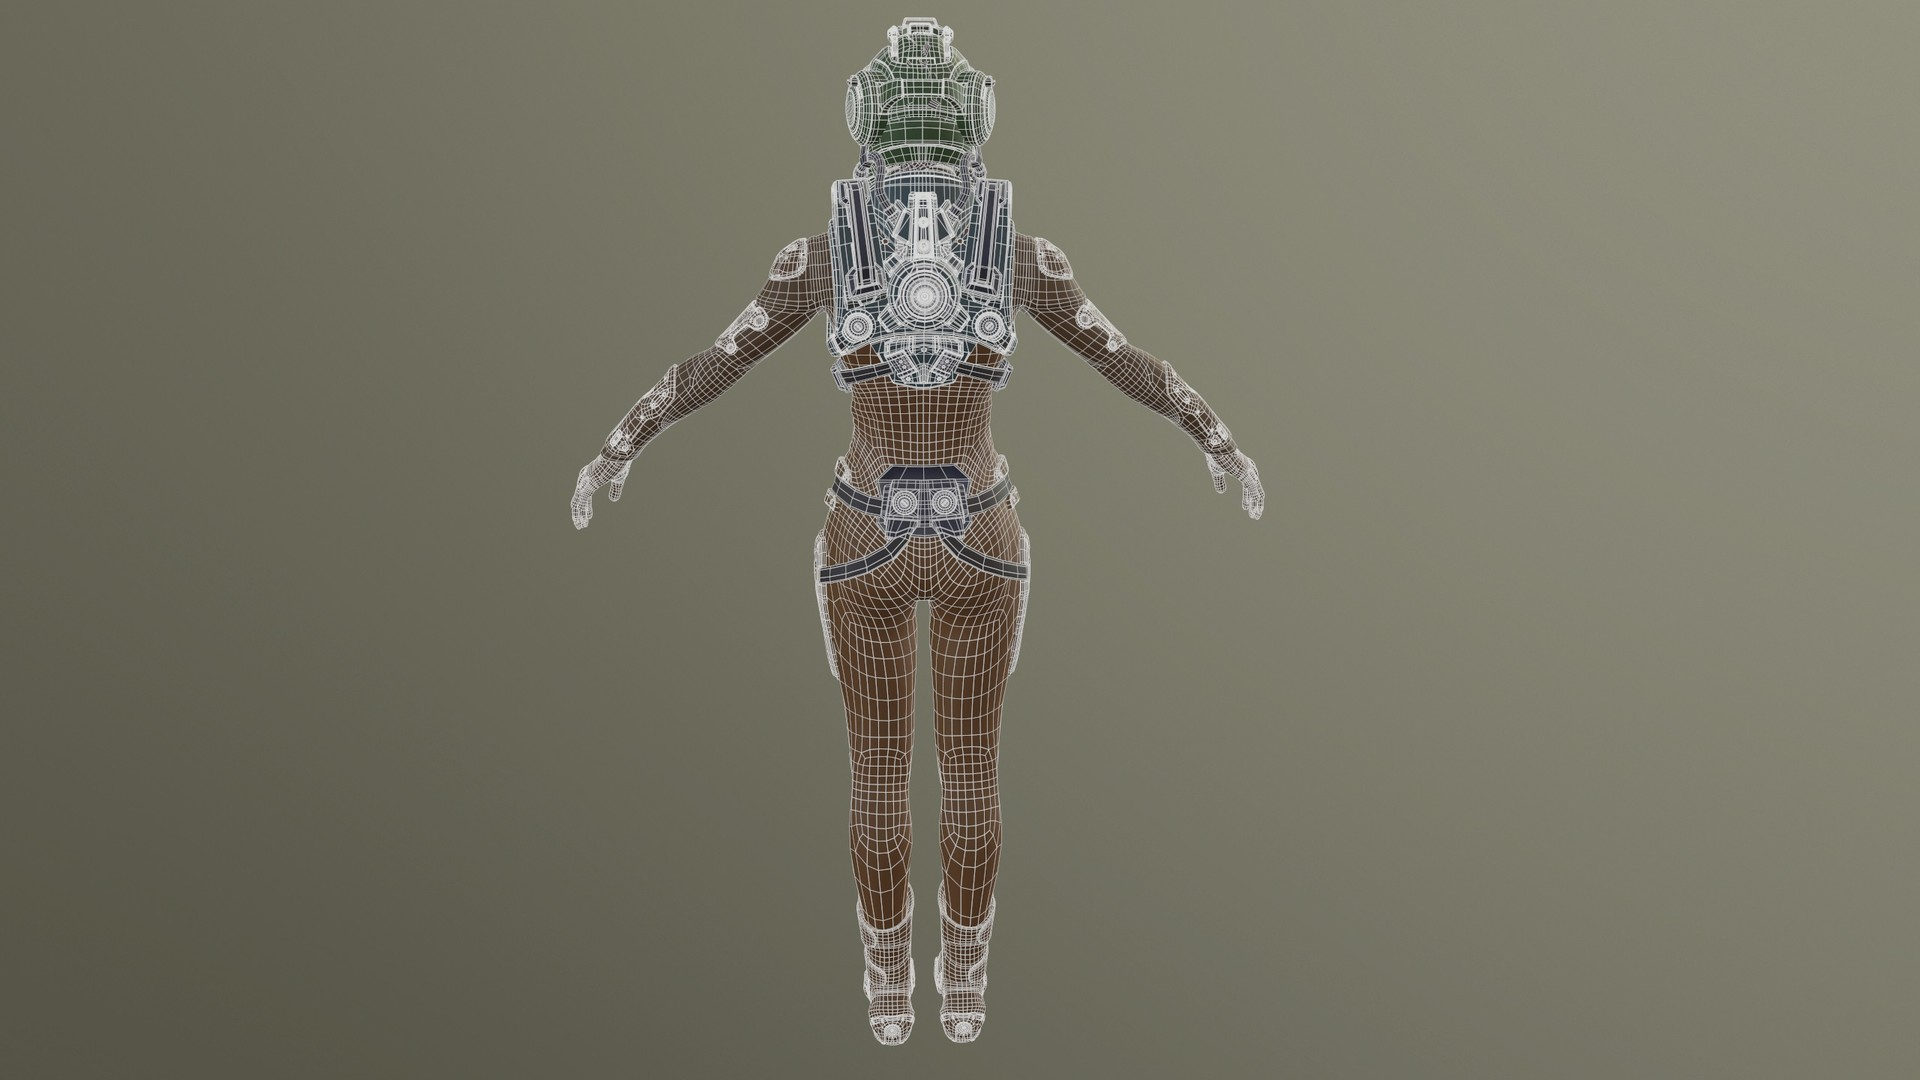 Fred howard mechpilot wireframe 1